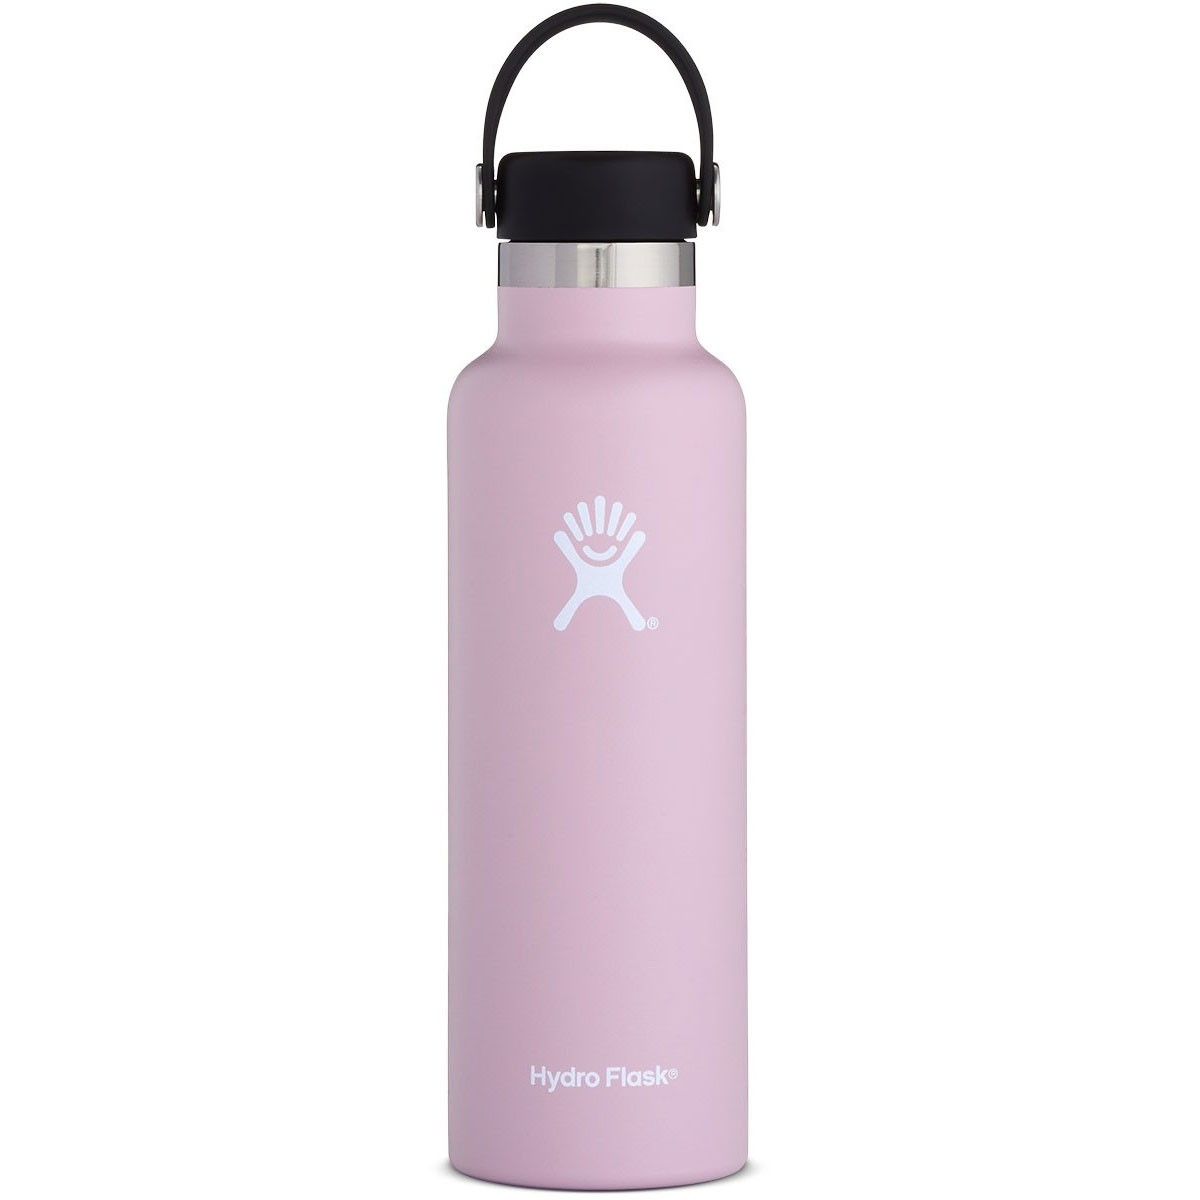 HYDRO FLASK - 21oz Insulated Bottle - Lilac